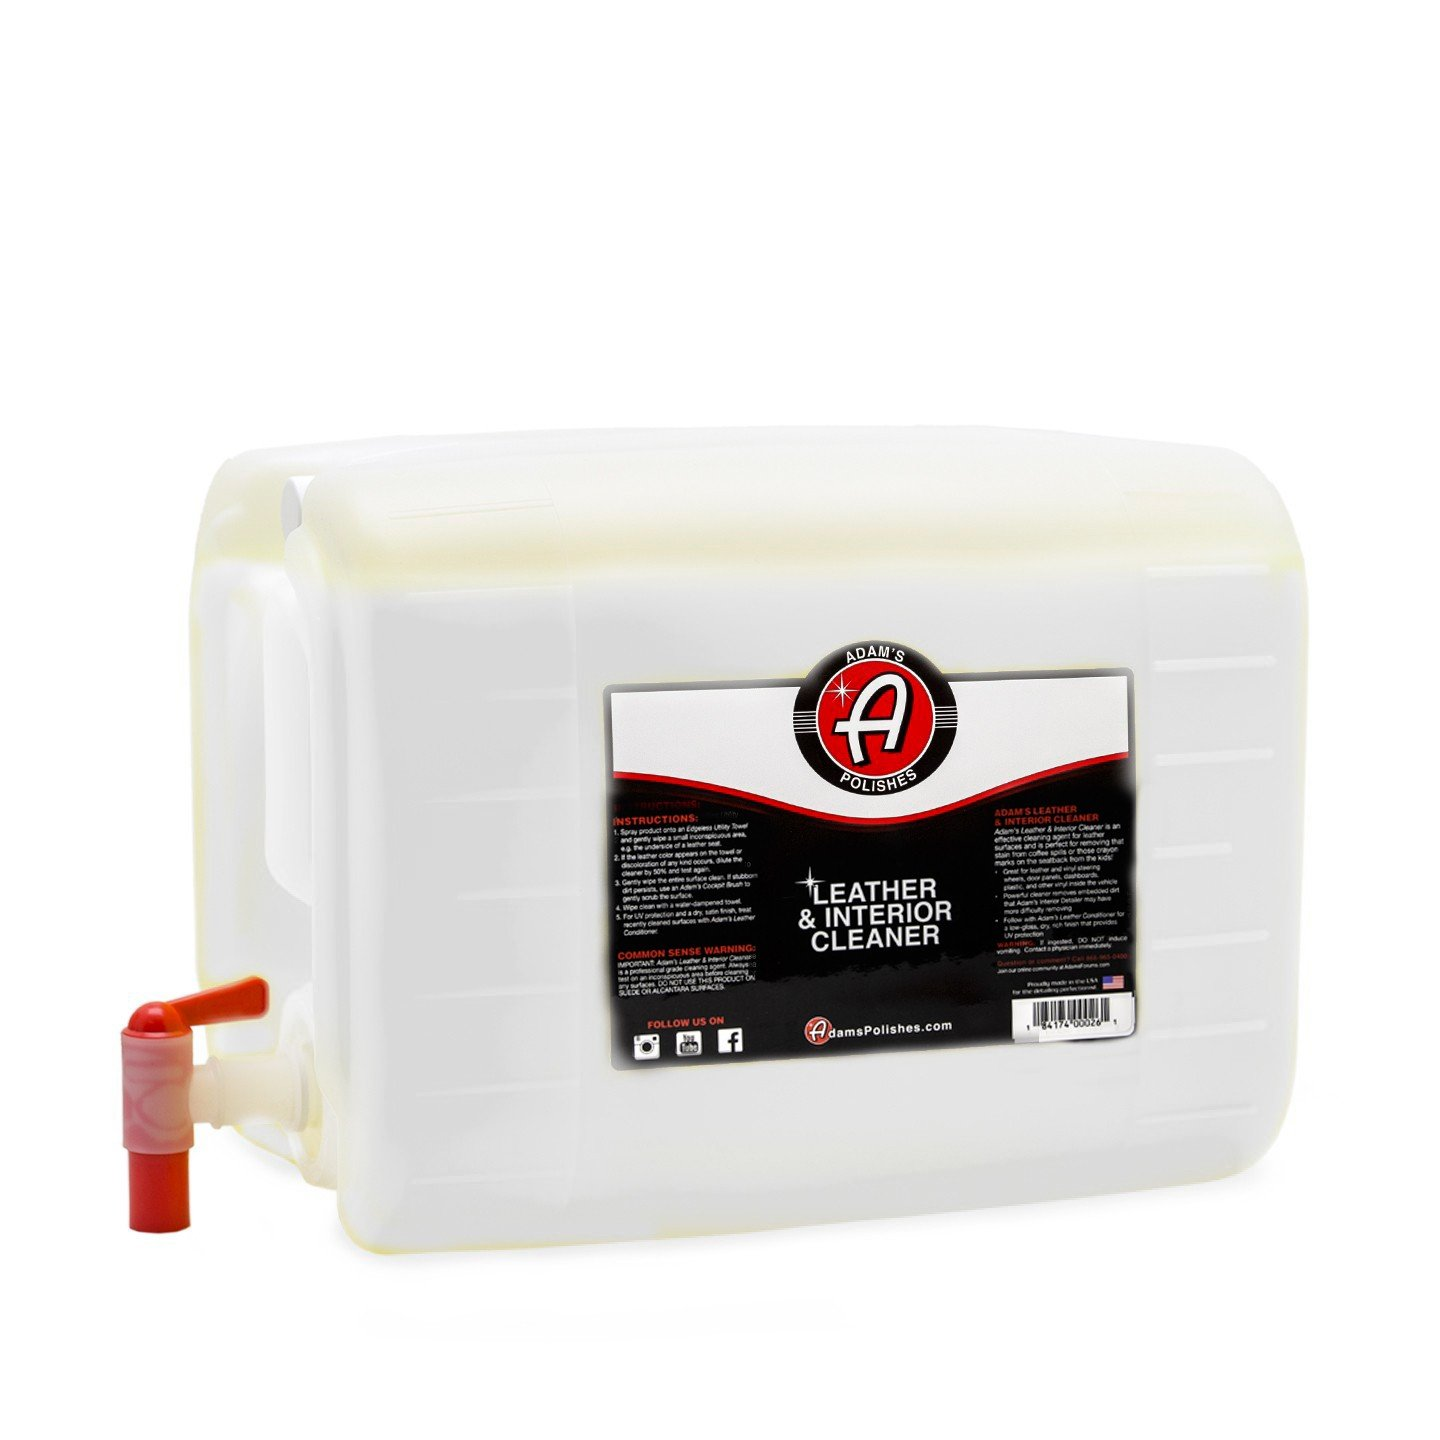 Adam's Leather & Interior Cleaner 16oz - Safely Deep Cleans All Leather Vinyl and Plastic Interior Surfaces - Gentle on Your Interior, Tough on Dirt Adam' s Polishes